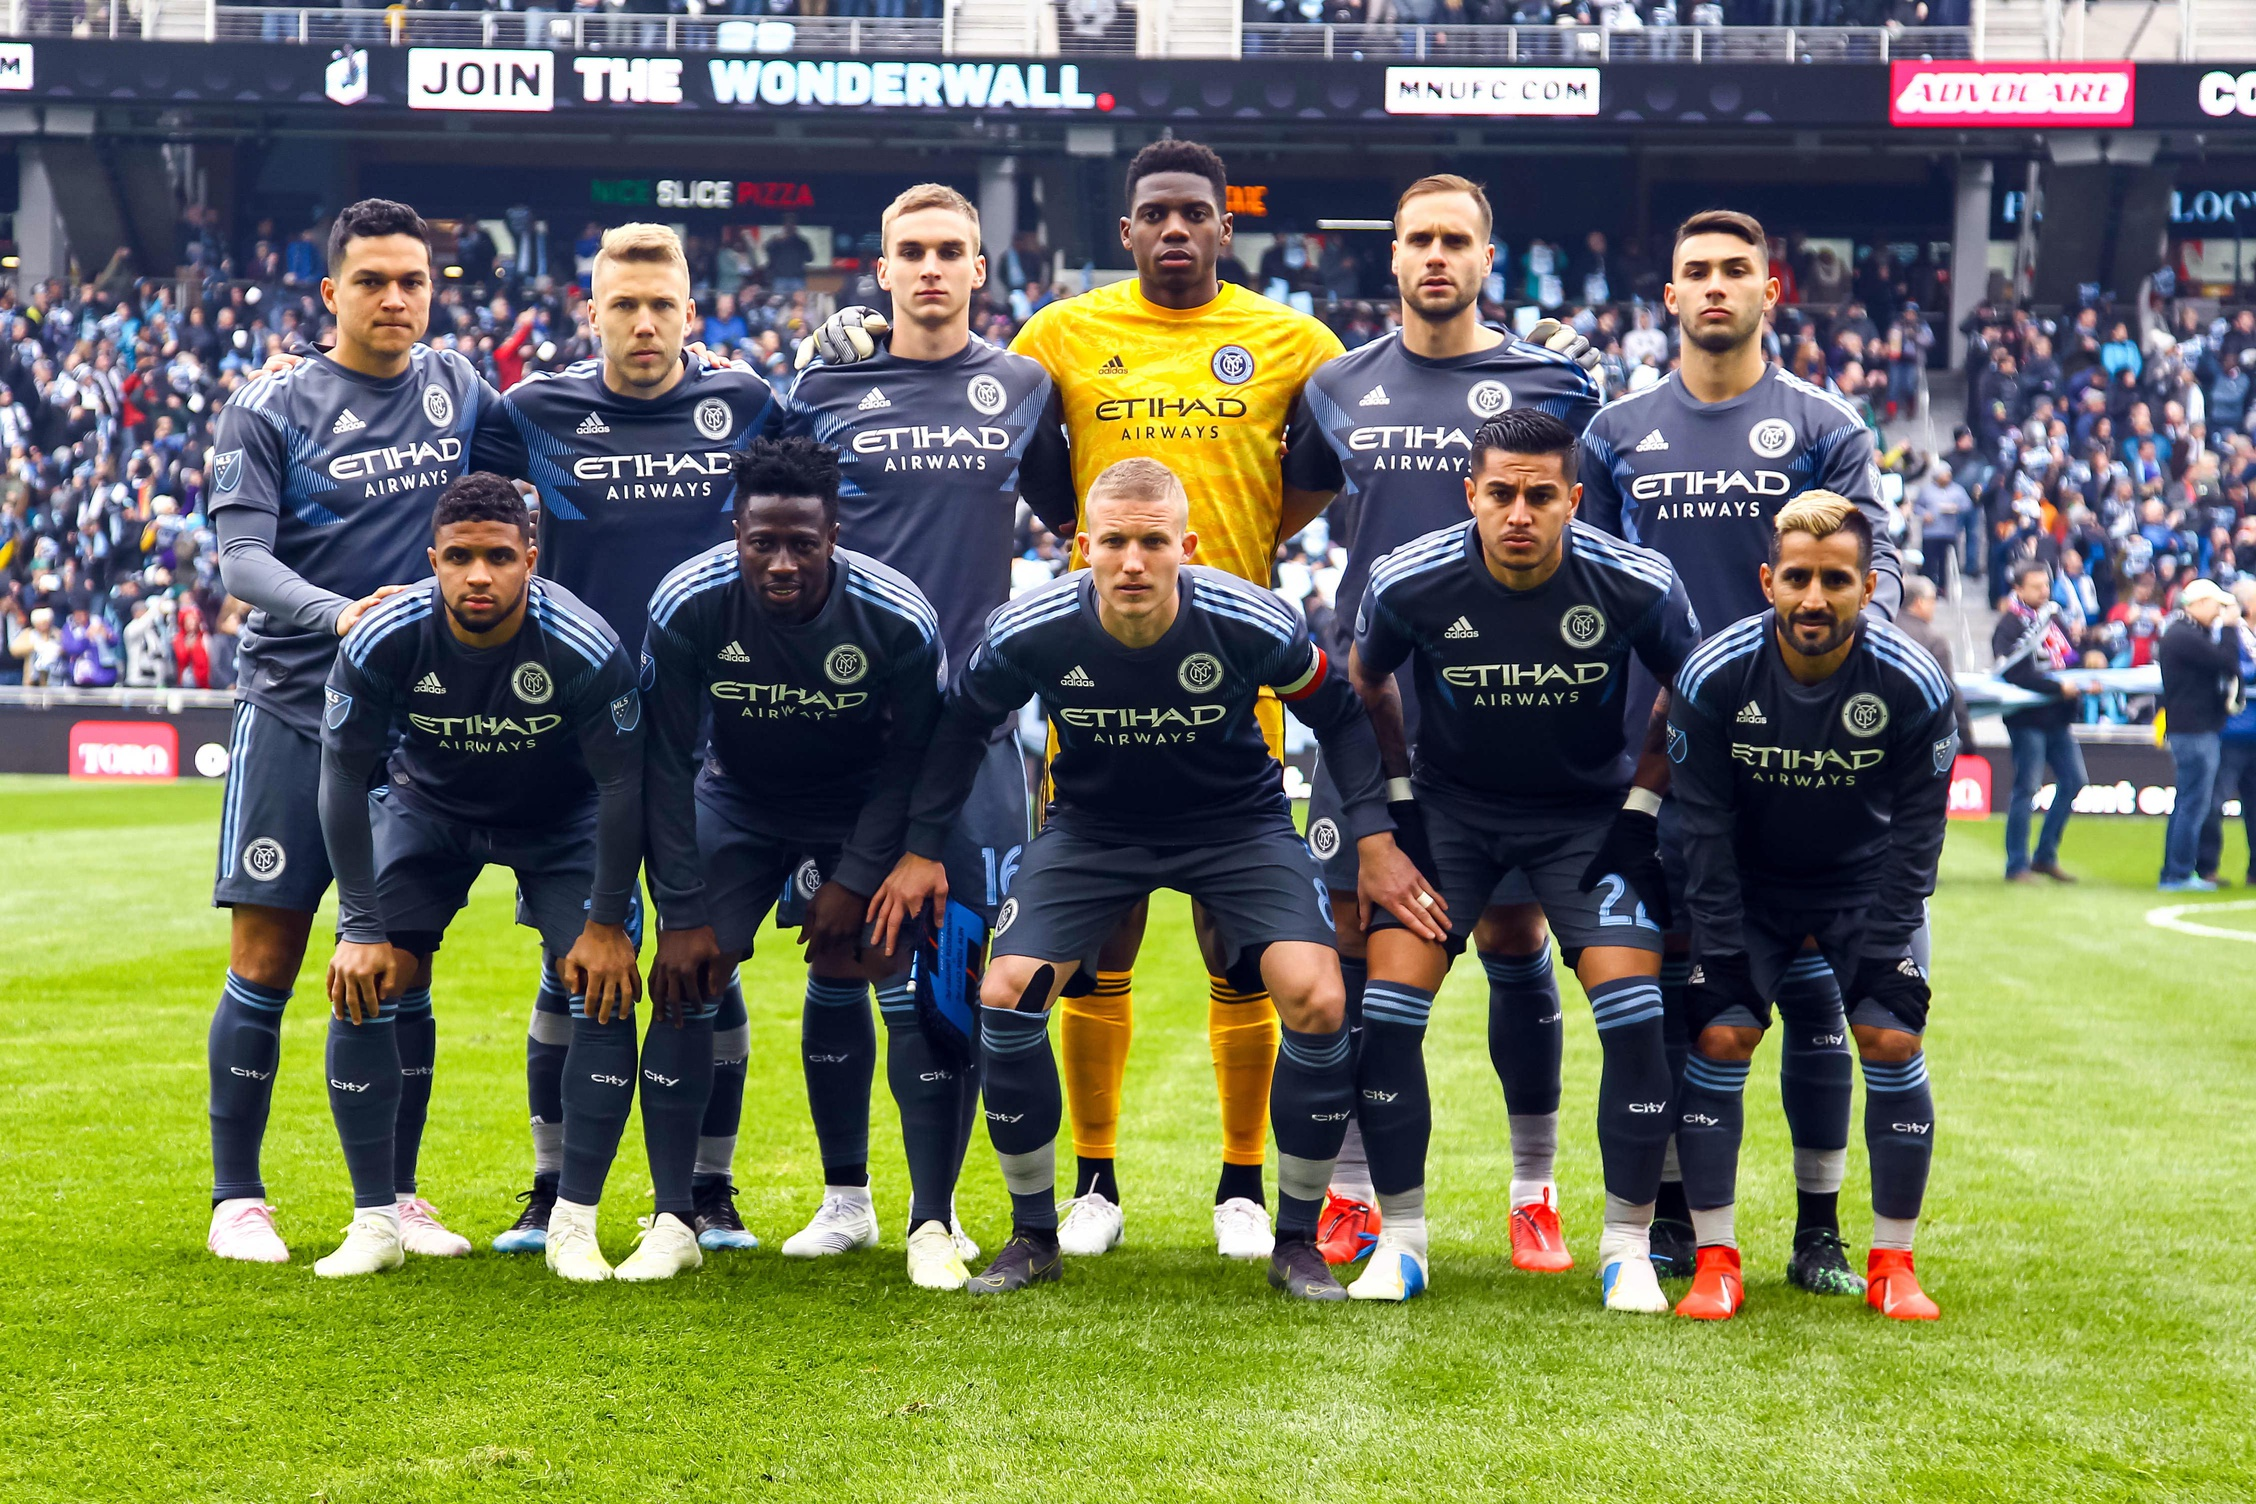 Apr 13, 2019; Saint Paul, MN, USA; New York City poses before the start of the game against Minnesota United at Allianz Field. Mandatory Credit: David Berding-USA TODAY Sports